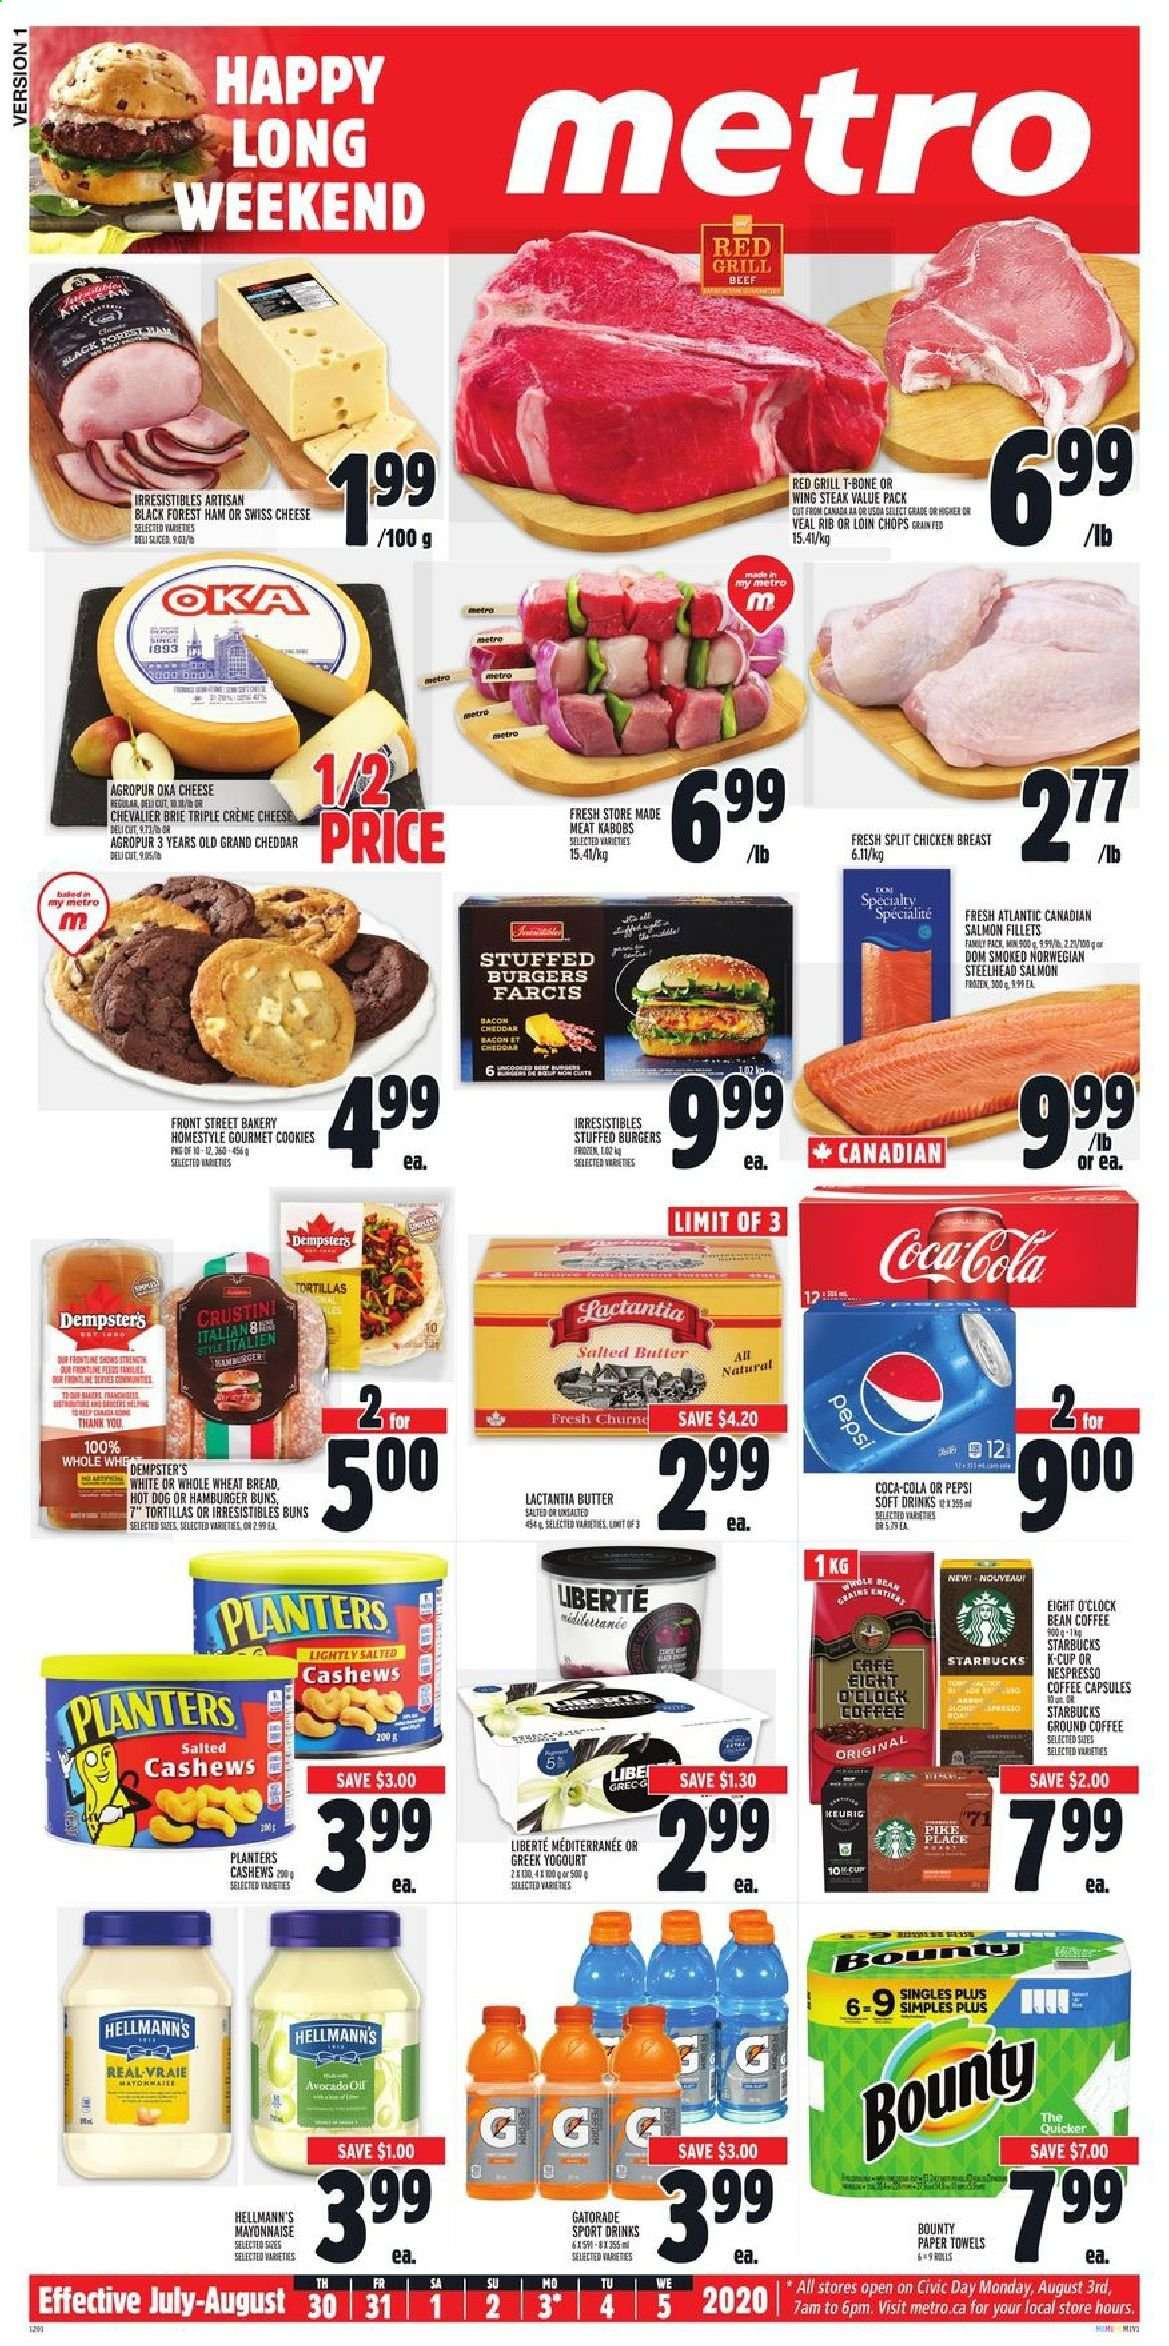 Metro Flyer - July 30, 2020 - August 05, 2020 - Sales products - bacon, beef meat, bread, brie, butter, capsules, cashews, clock, coffee, cookies, crème, cup, grill, salmon, starbucks, swiss cheese, tortillas, veal meat, wheat bread, ham, hot dog, pike, cheddar, chicken, chicken breast, paper towel, pepsi, steak, cheese, burgerON DUPLICATE KEY UPDATE `name` = VALUES(`name`); burgers, hamburger, slicer, nespresso, bounty, café, gril, tortilla, family pack, metro. Page 1.